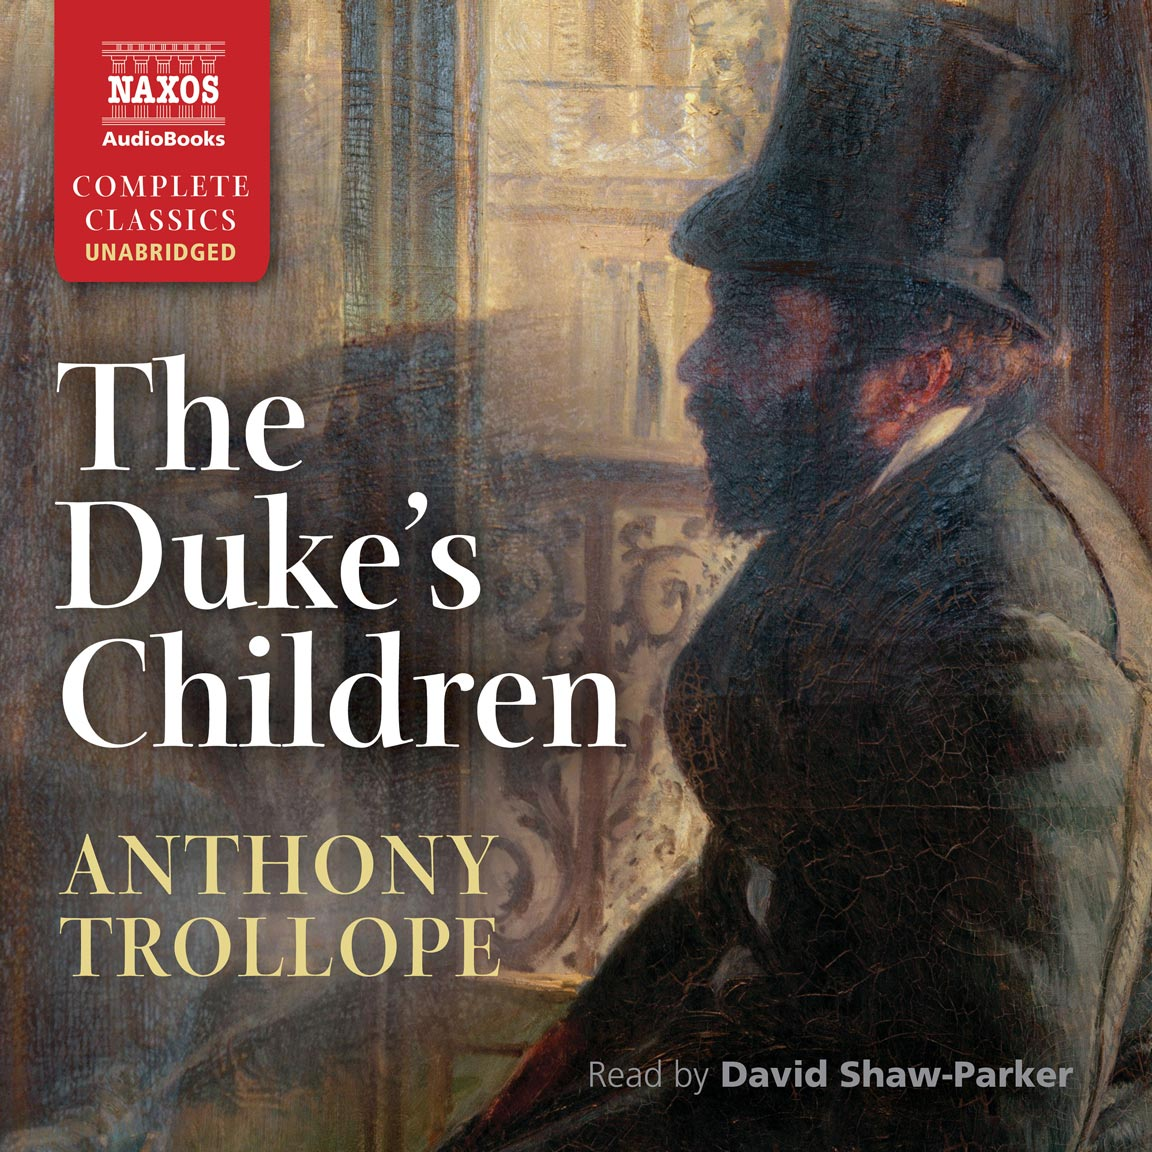 The Duke's Children (unabridged)